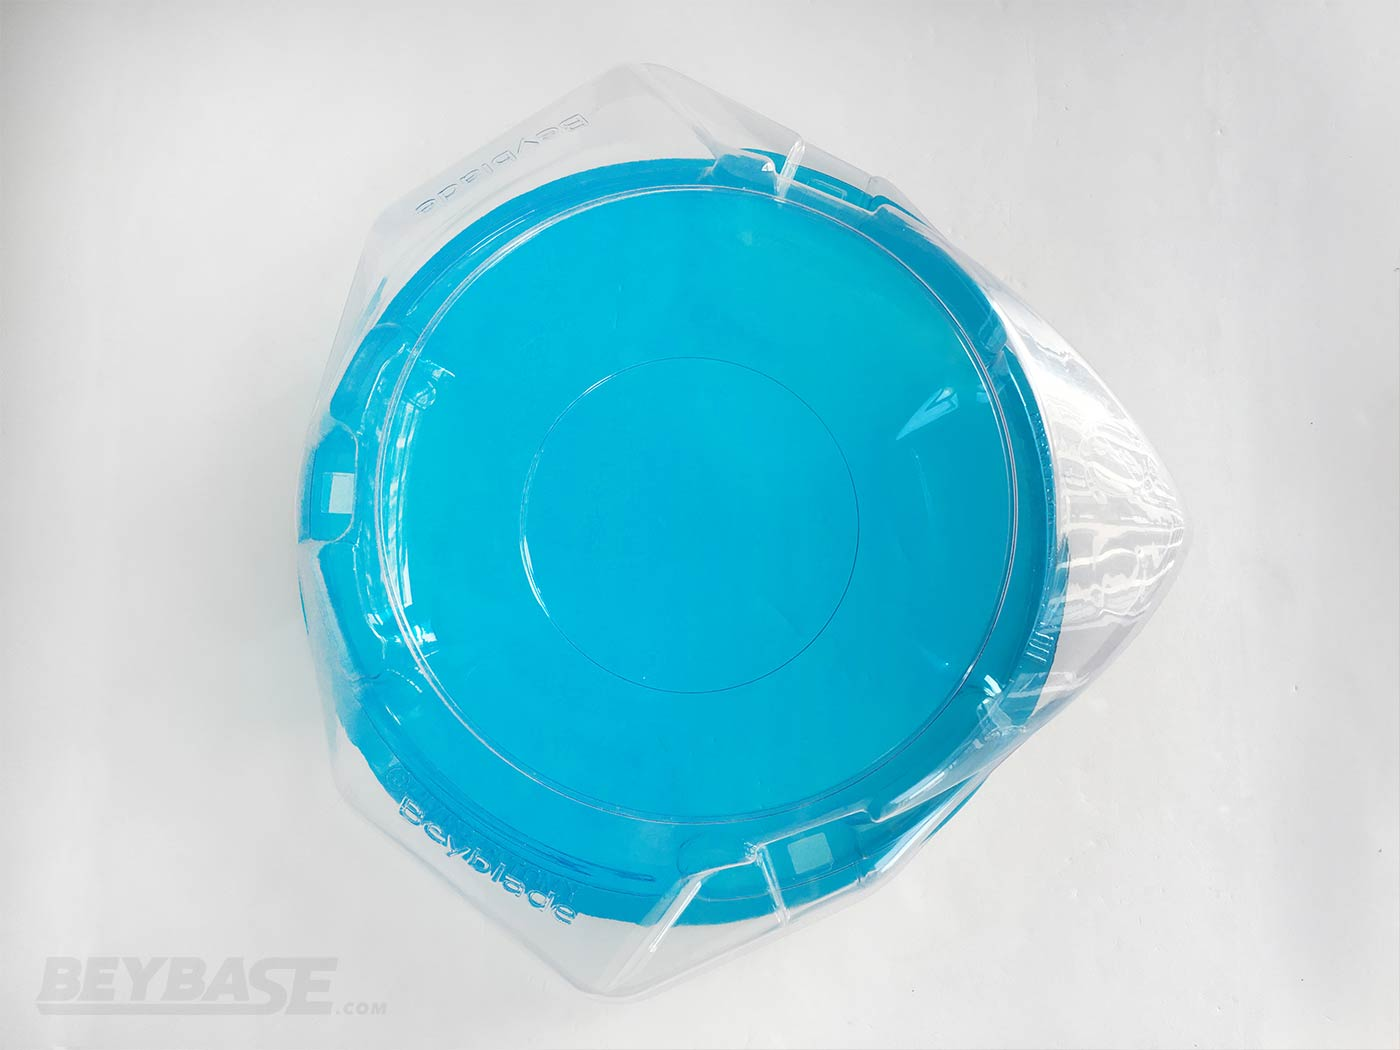 beyblade burst dash beystadium top view